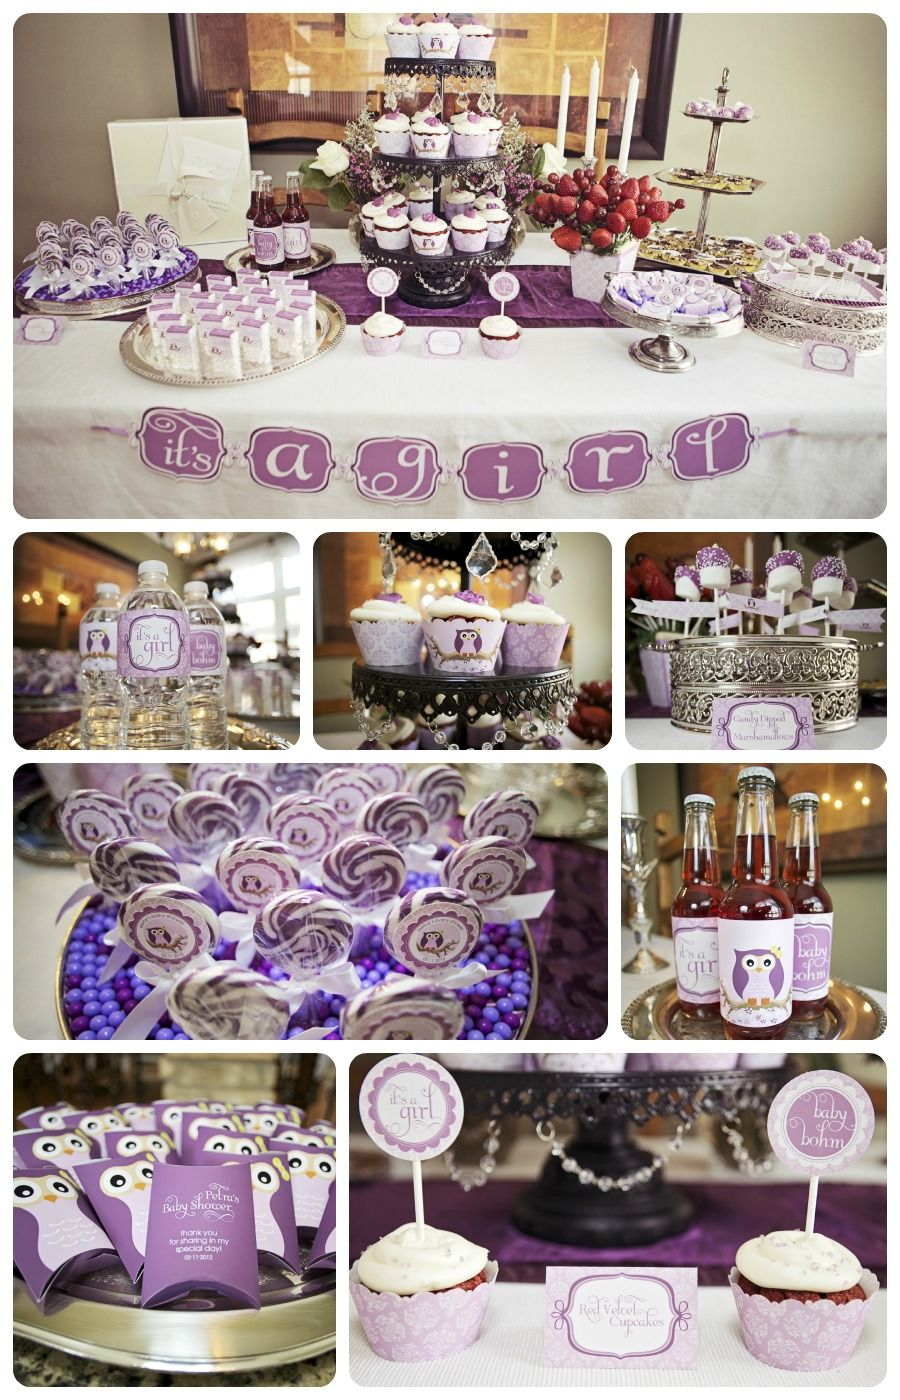 Purple Baby Shower Themes For Girls : purple, shower, themes, girls, Heart, Parties:, Vintage, Lavender, Shower, Purple,, Showers,